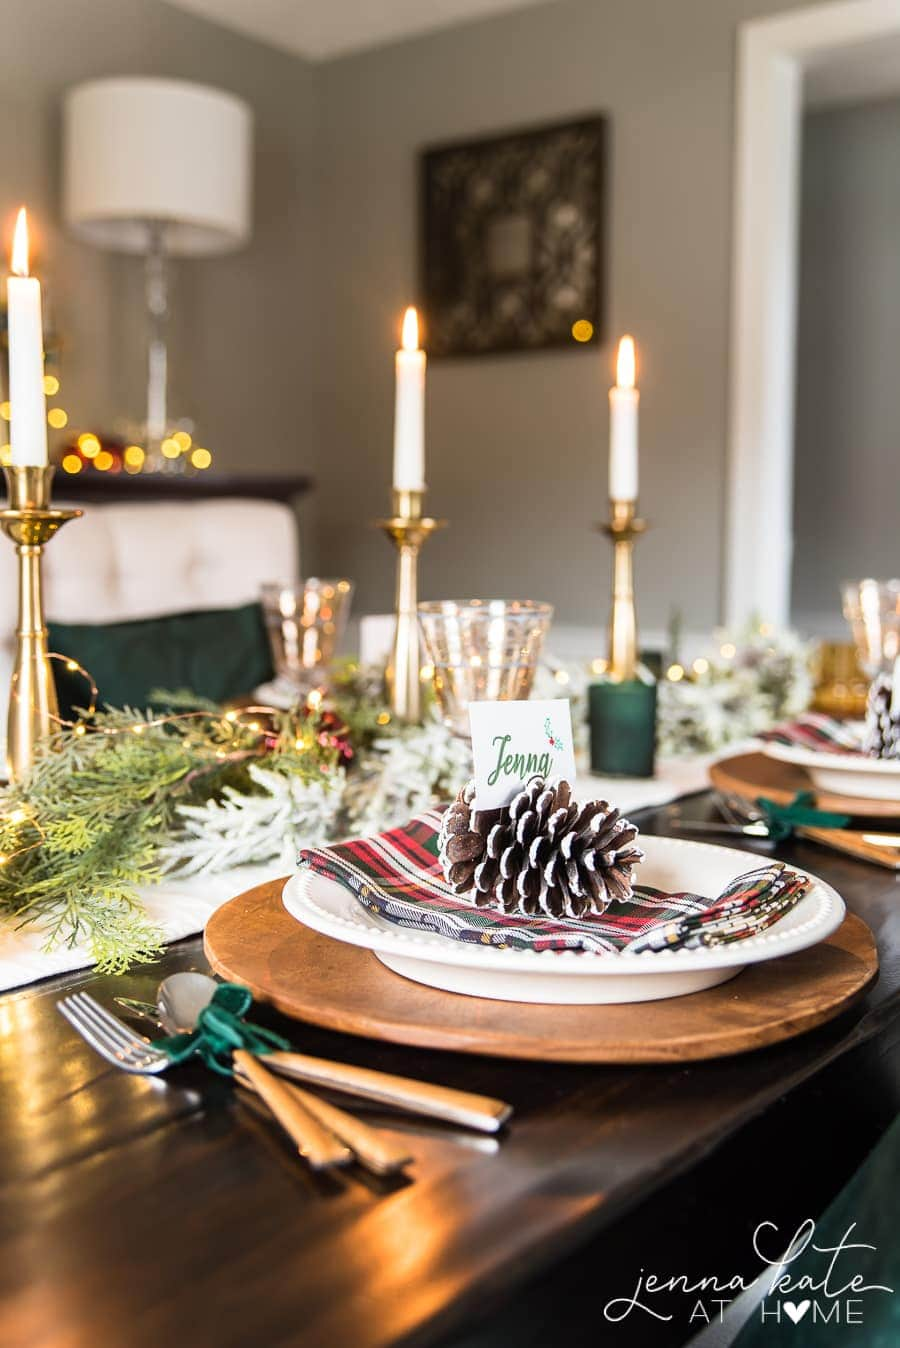 Homemade Christmas place setting ideas